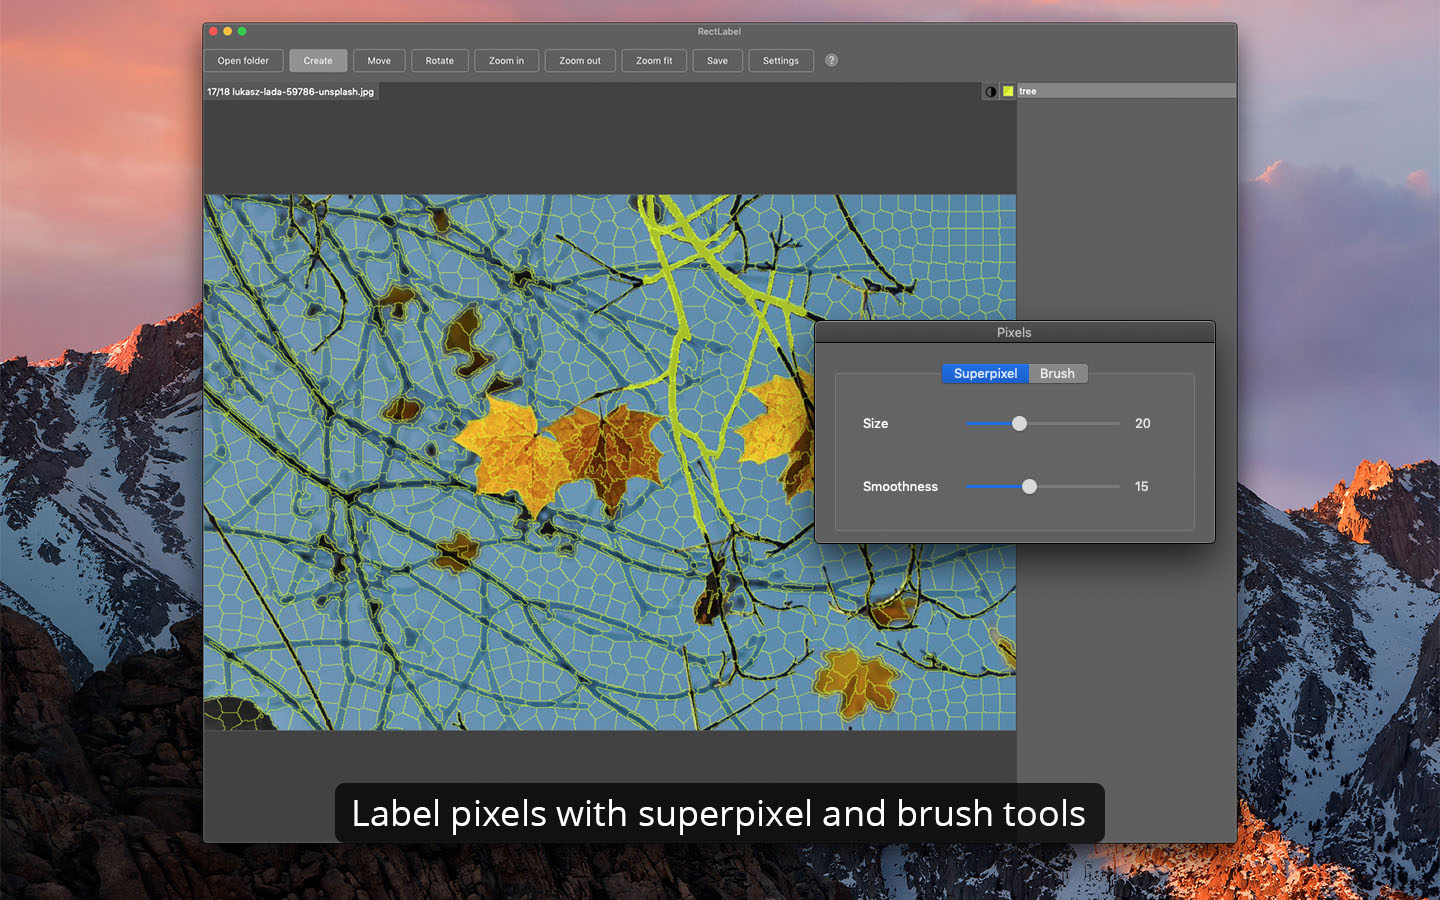 Label pixels with superpixel and brush tools